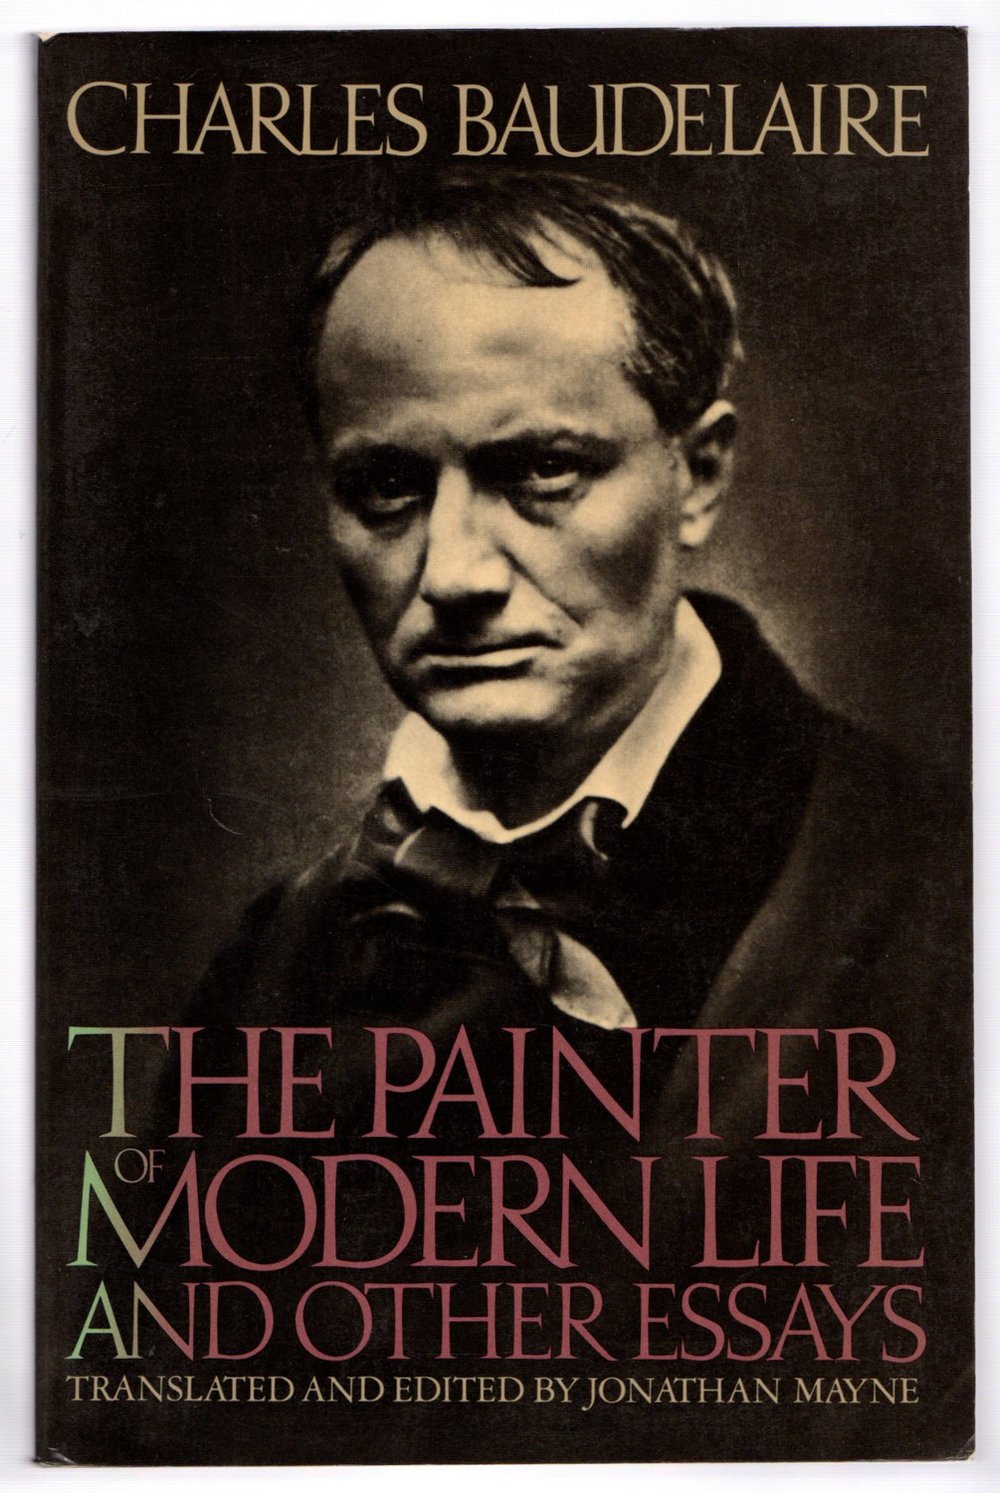 the painter of modern life and other essays 1964 The painter of modern life digitised chapter - see attached seminar reading add to my bookmarks export citation type chapter is part of book title the painter of modern life and other essays author(s) charles.